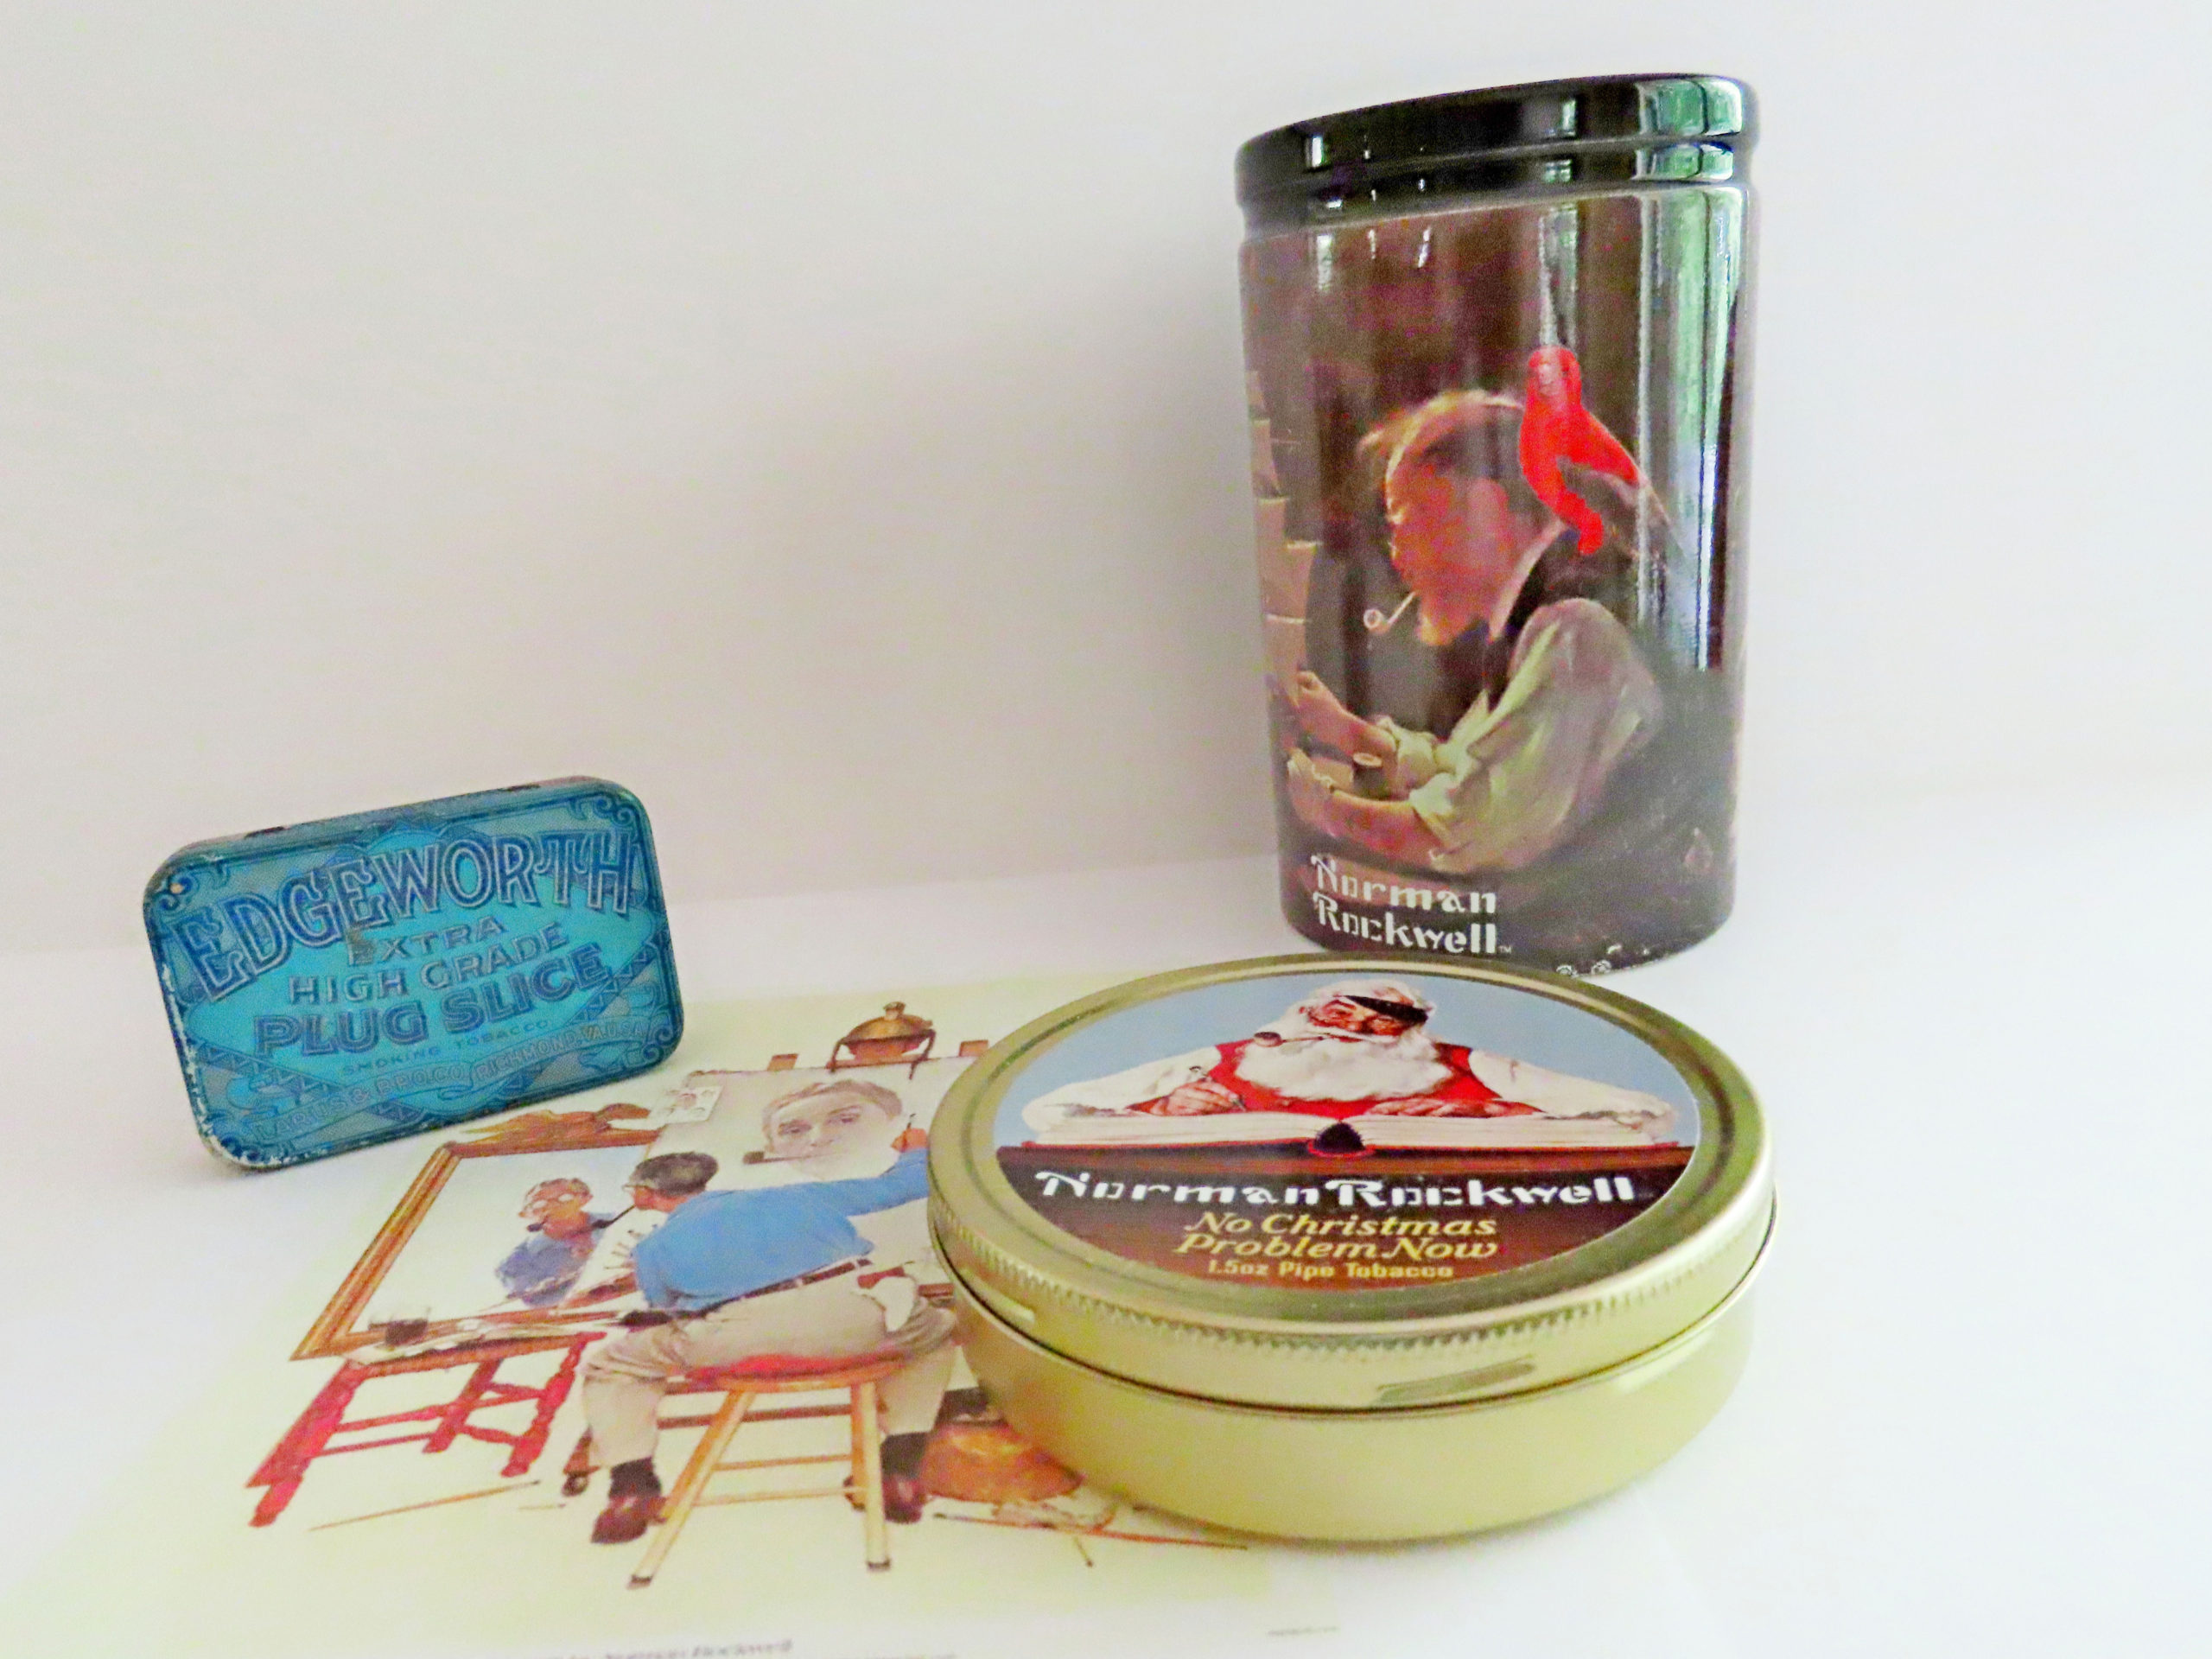 """Norman Rockwell """"No Christmas Problem Now"""" Tobacco & """"For a Good Boy"""" Ceramic Jar, along with Edgeworth, which he seemingly smoked."""